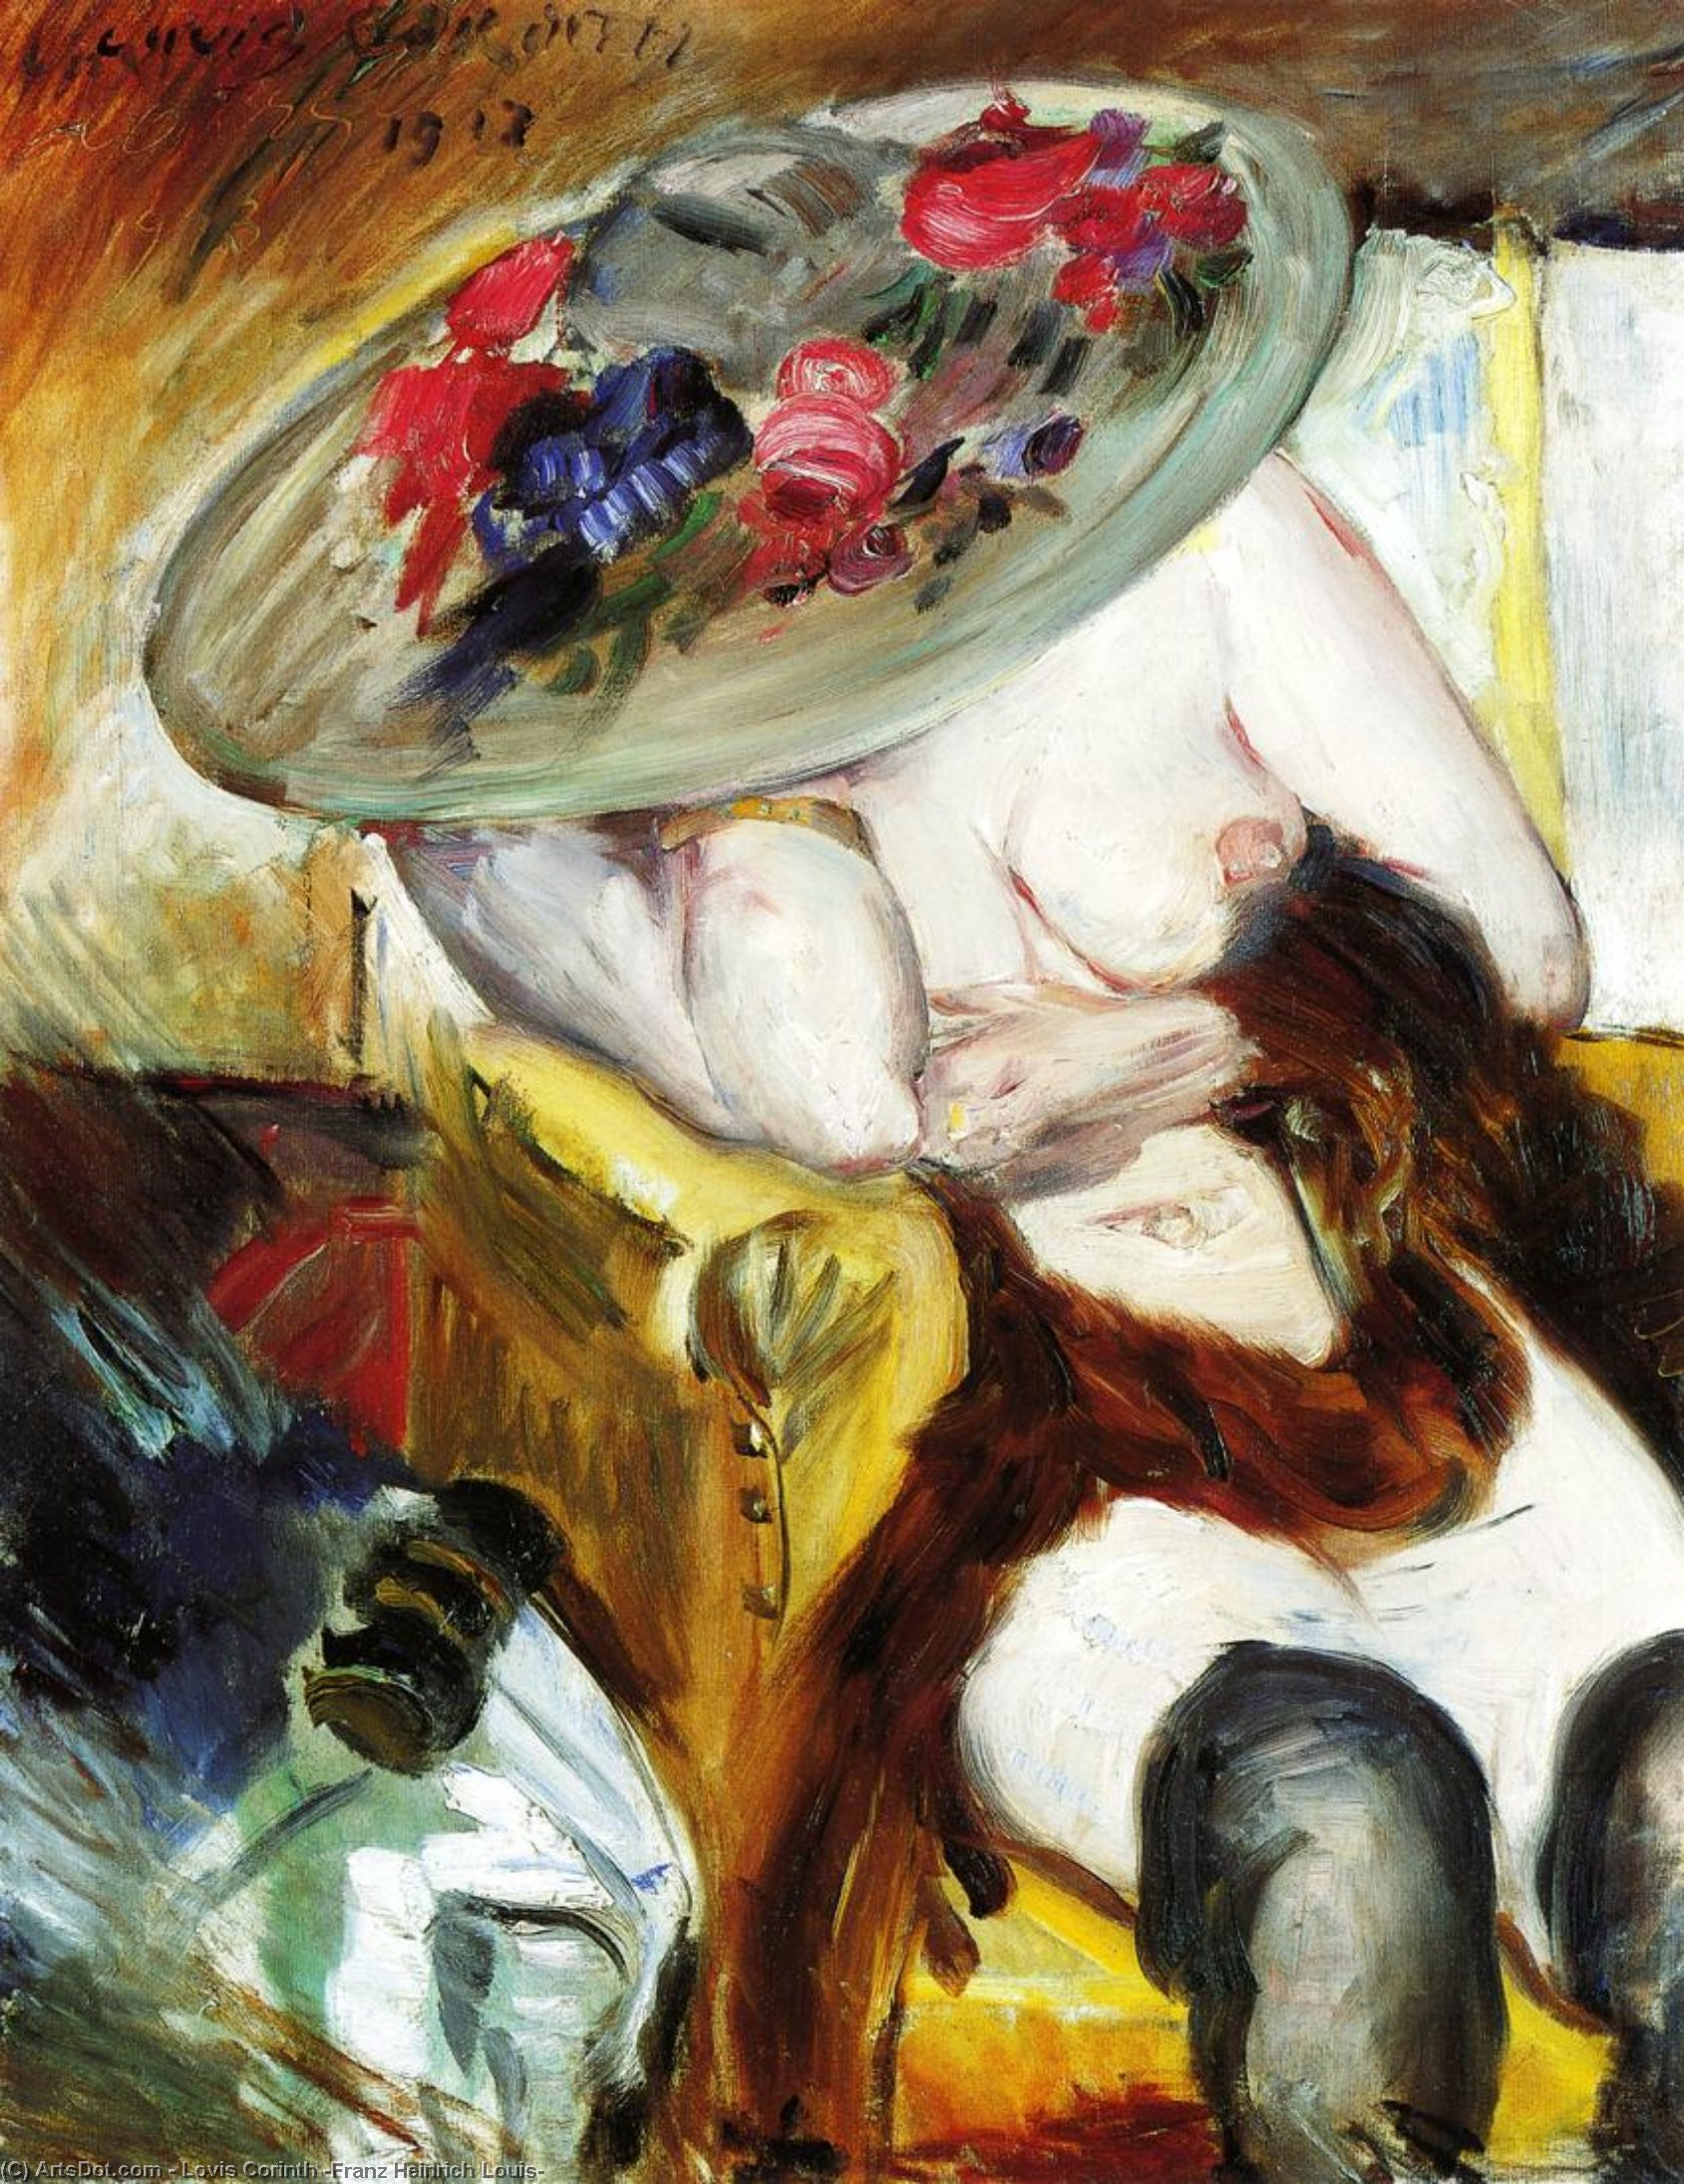 Italian Woman in a Yellow Chair, Oil On Canvas by Lovis Corinth (Franz Heinrich Louis) (1858-1925, Netherlands)